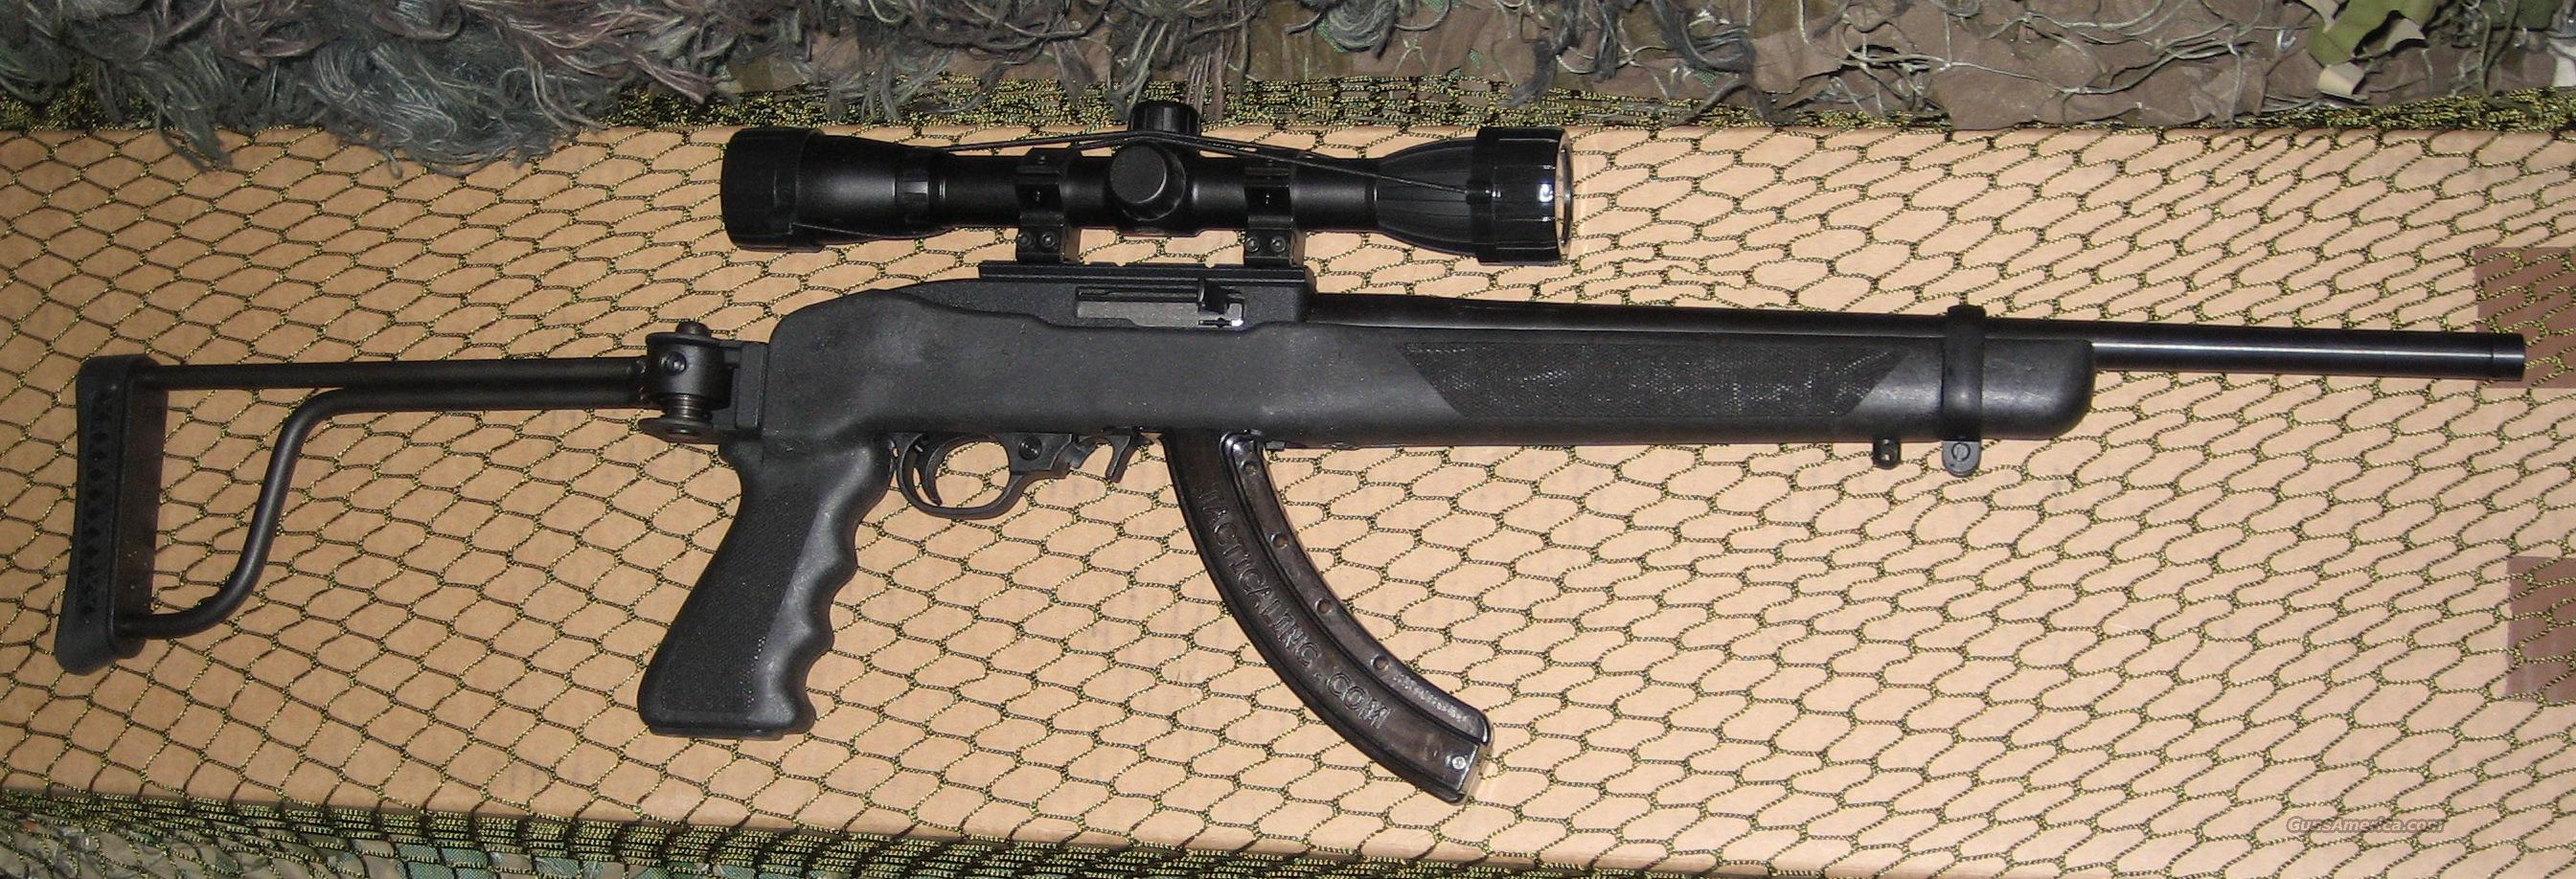 Tactical Ruger 10/22 with threaded barrel (standard size), scope, Butler Creek folding stock  Guns > Rifles > Ruger Rifles > 10-22